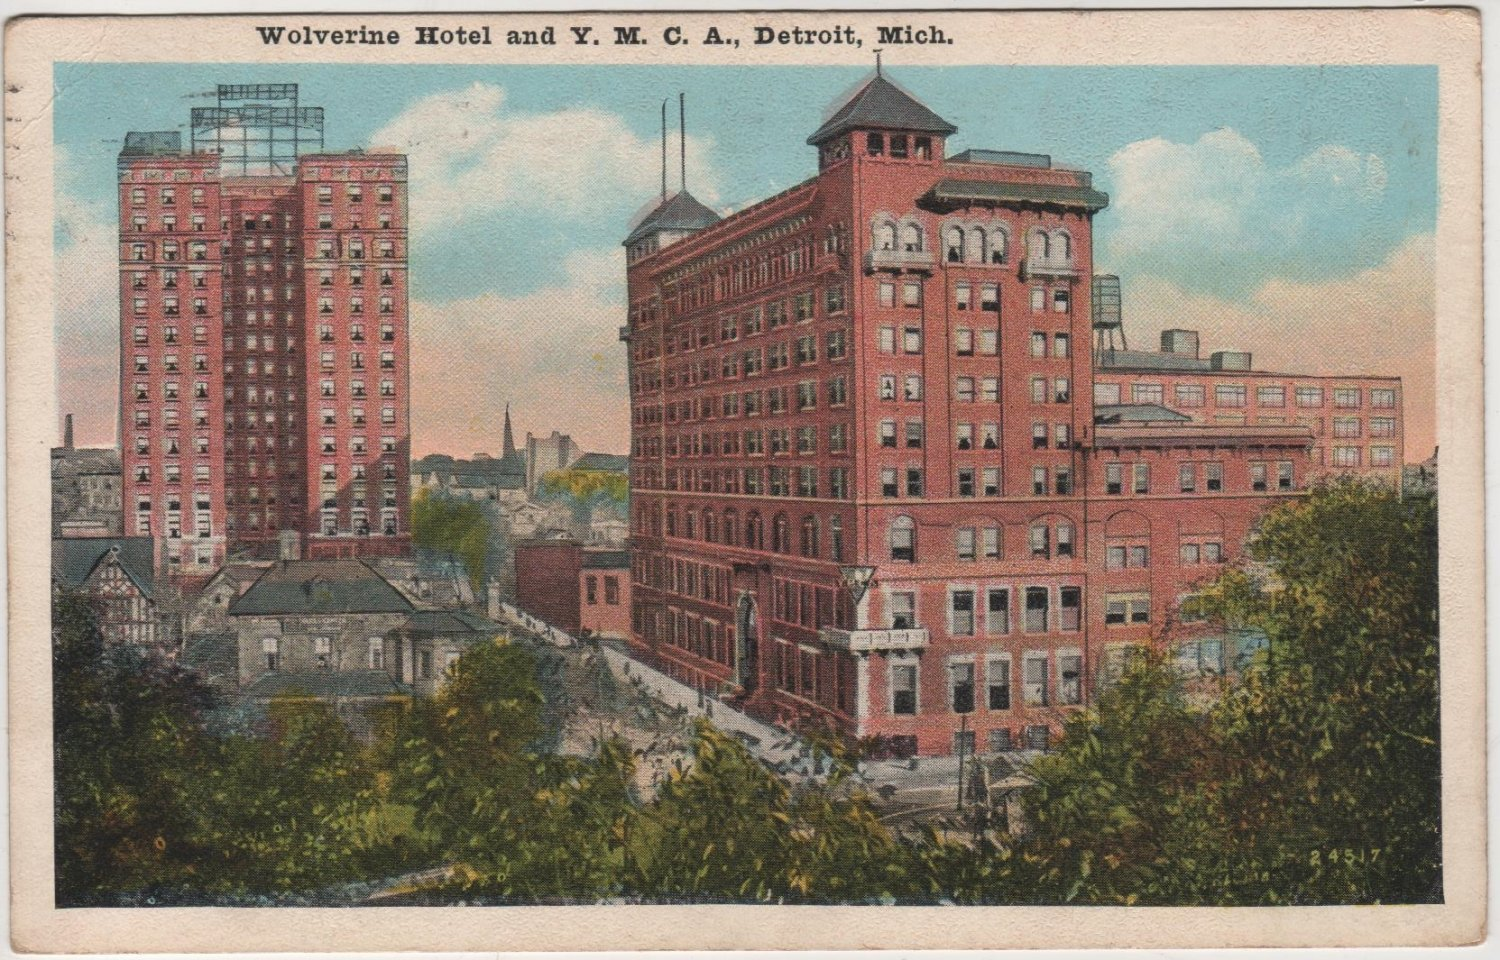 Detroit Michigan Postcard, The Wolverine Hotel and Y.M.C.A. Building c.1925